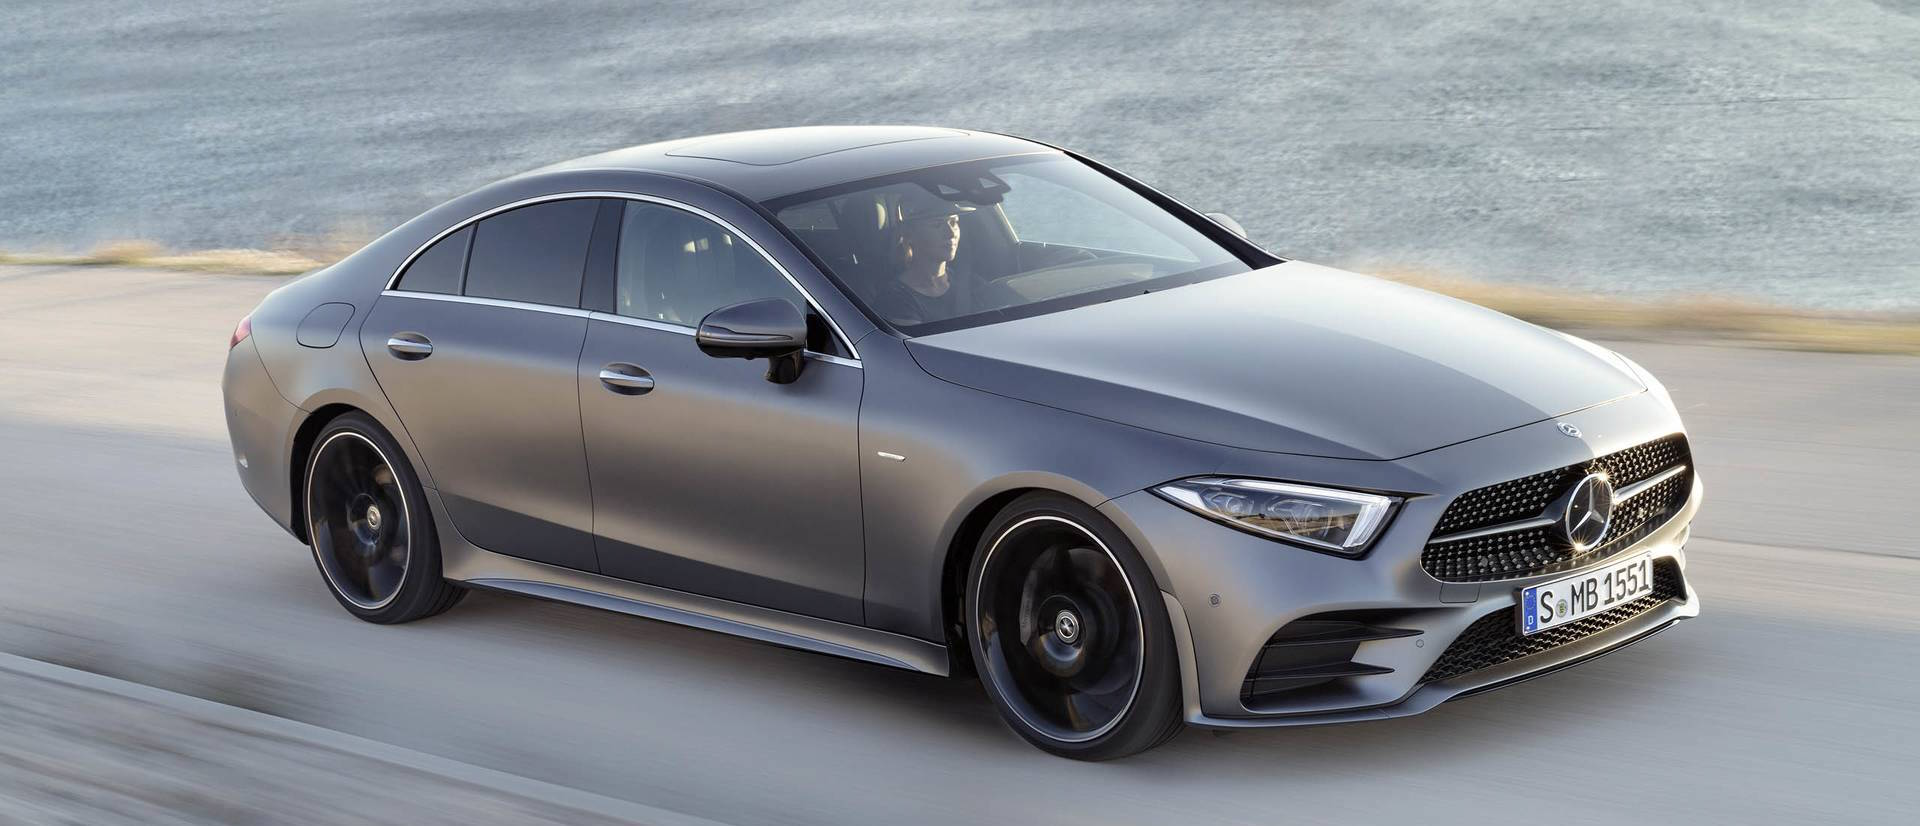 See How The 2019 Mercedes-Benz Cls Looks On A Real Road